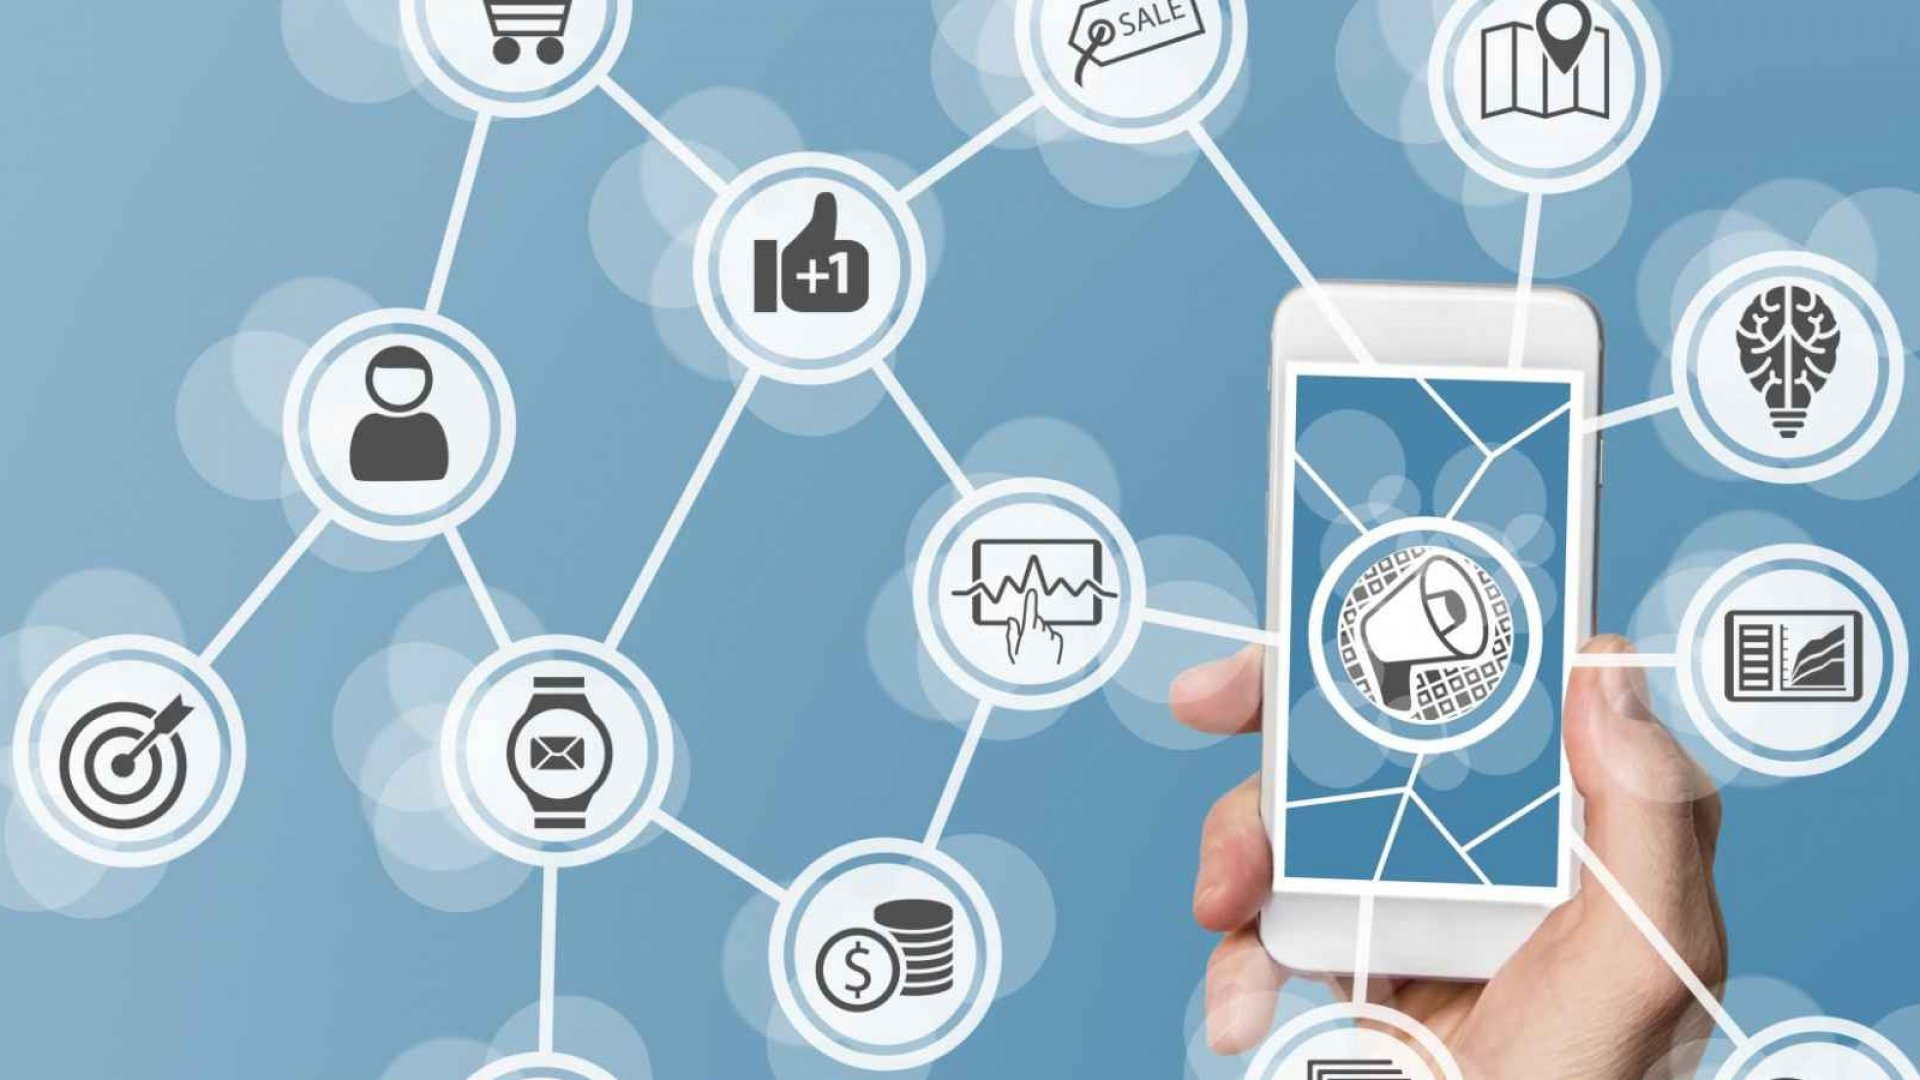 Majority of Small Businesses and Economies Are Not Ready for Digital Platforms, But They Should Be